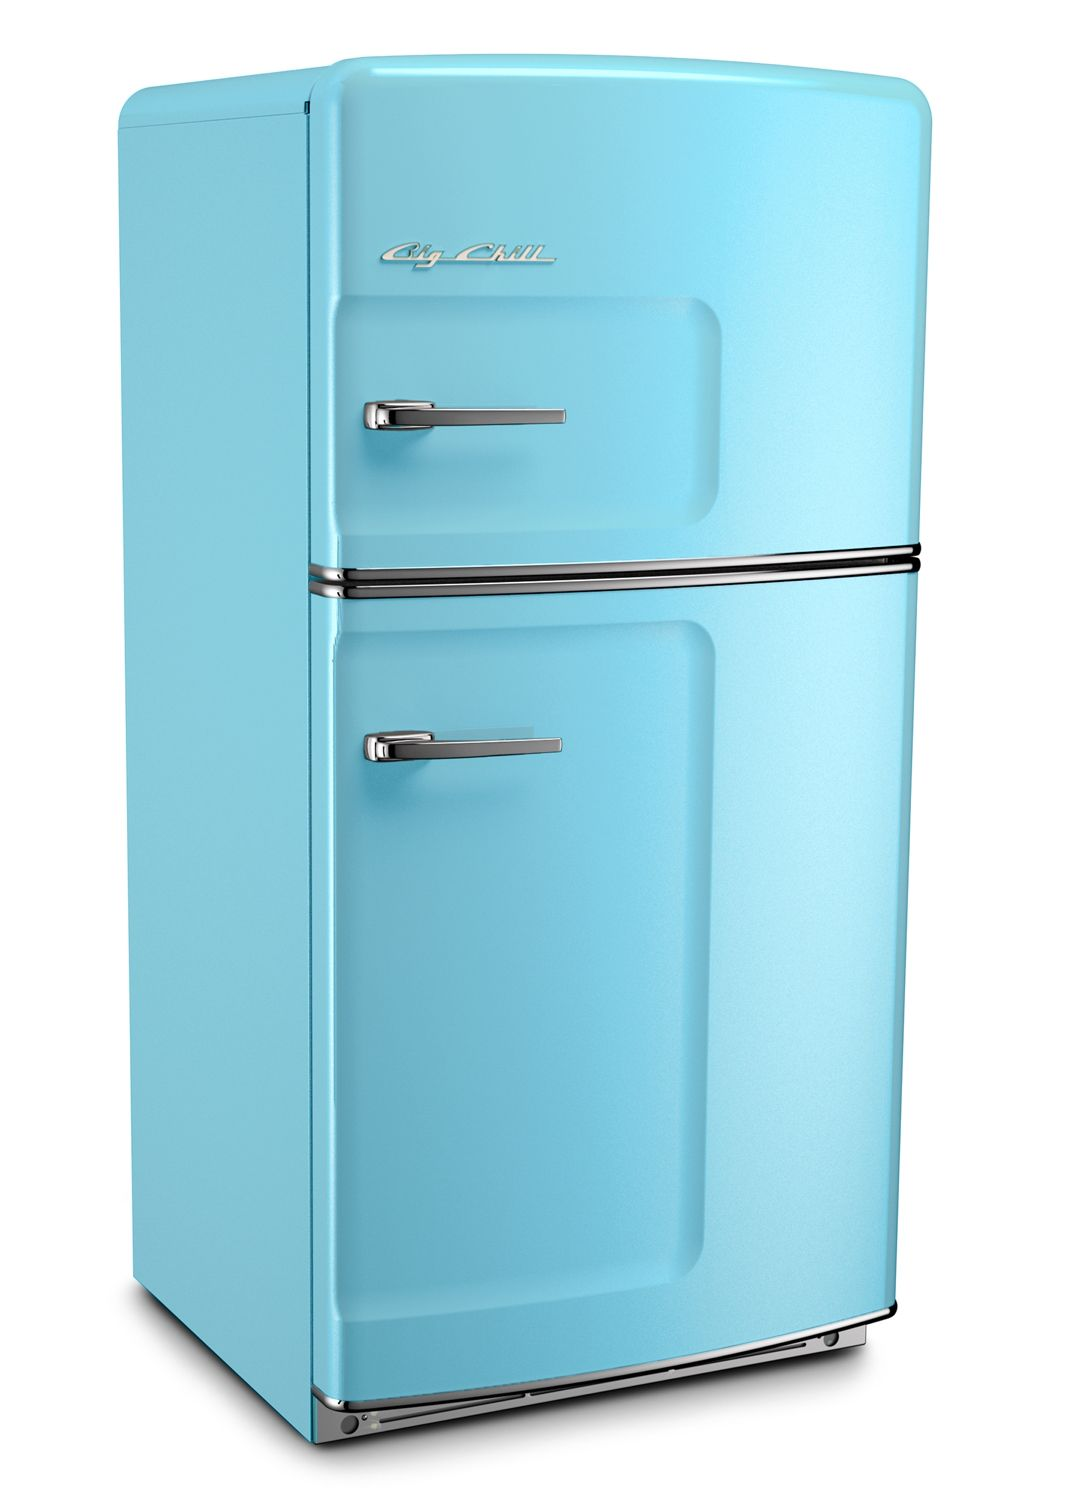 blue retro fridge from big chill